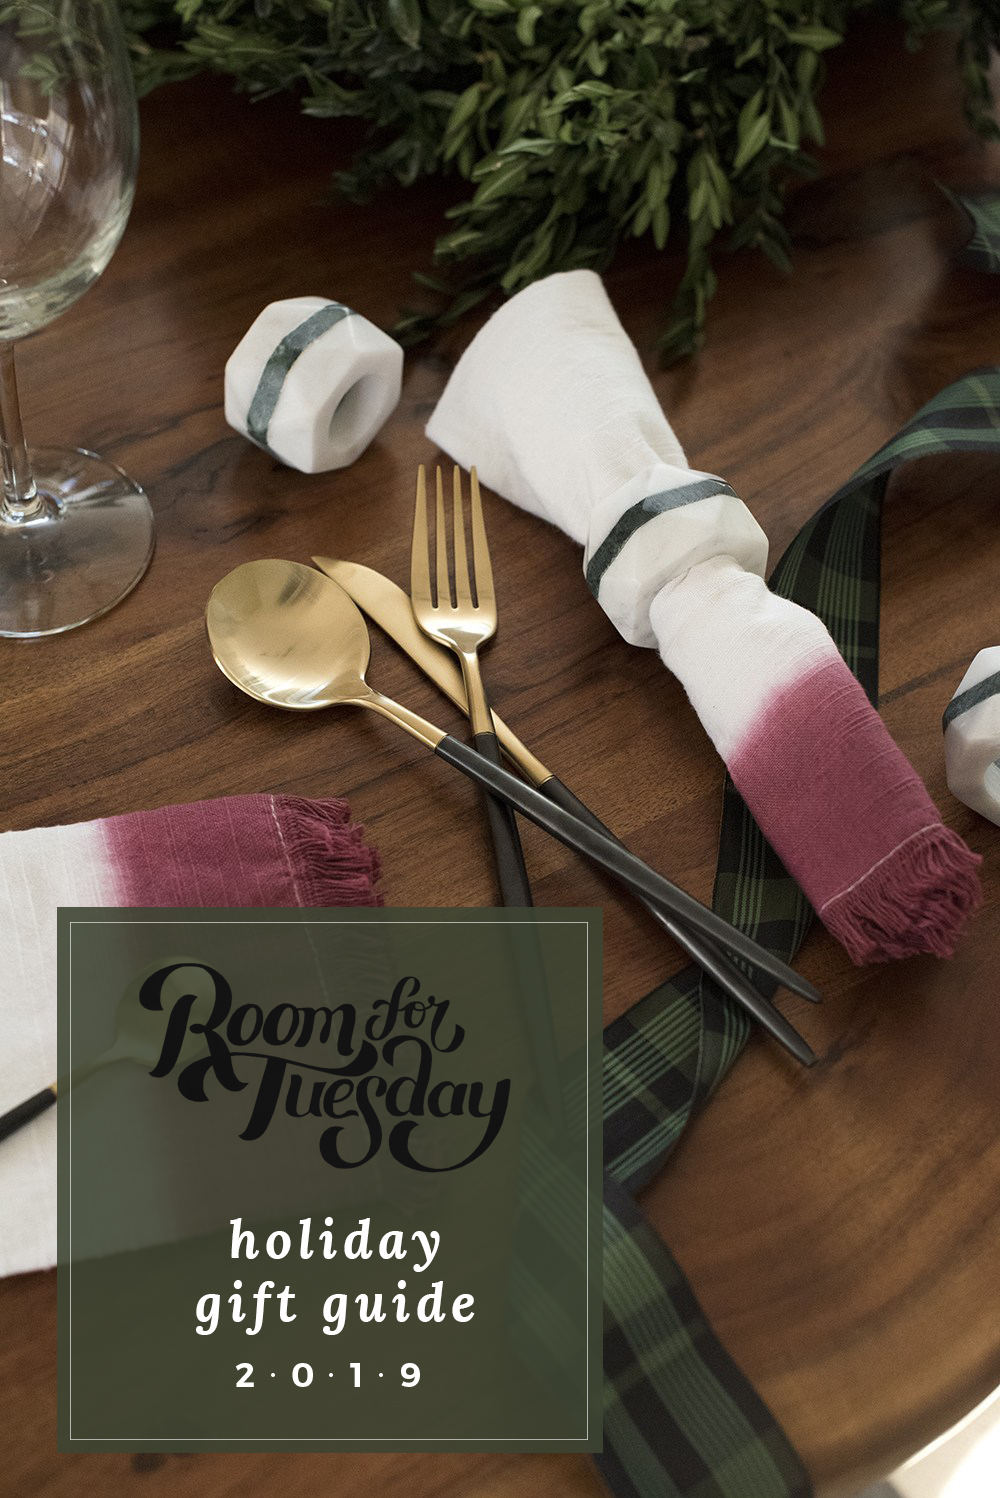 2019 Holiday Gift Guide : 15 DIY & Homemade Gifts - roomfortuesday.com